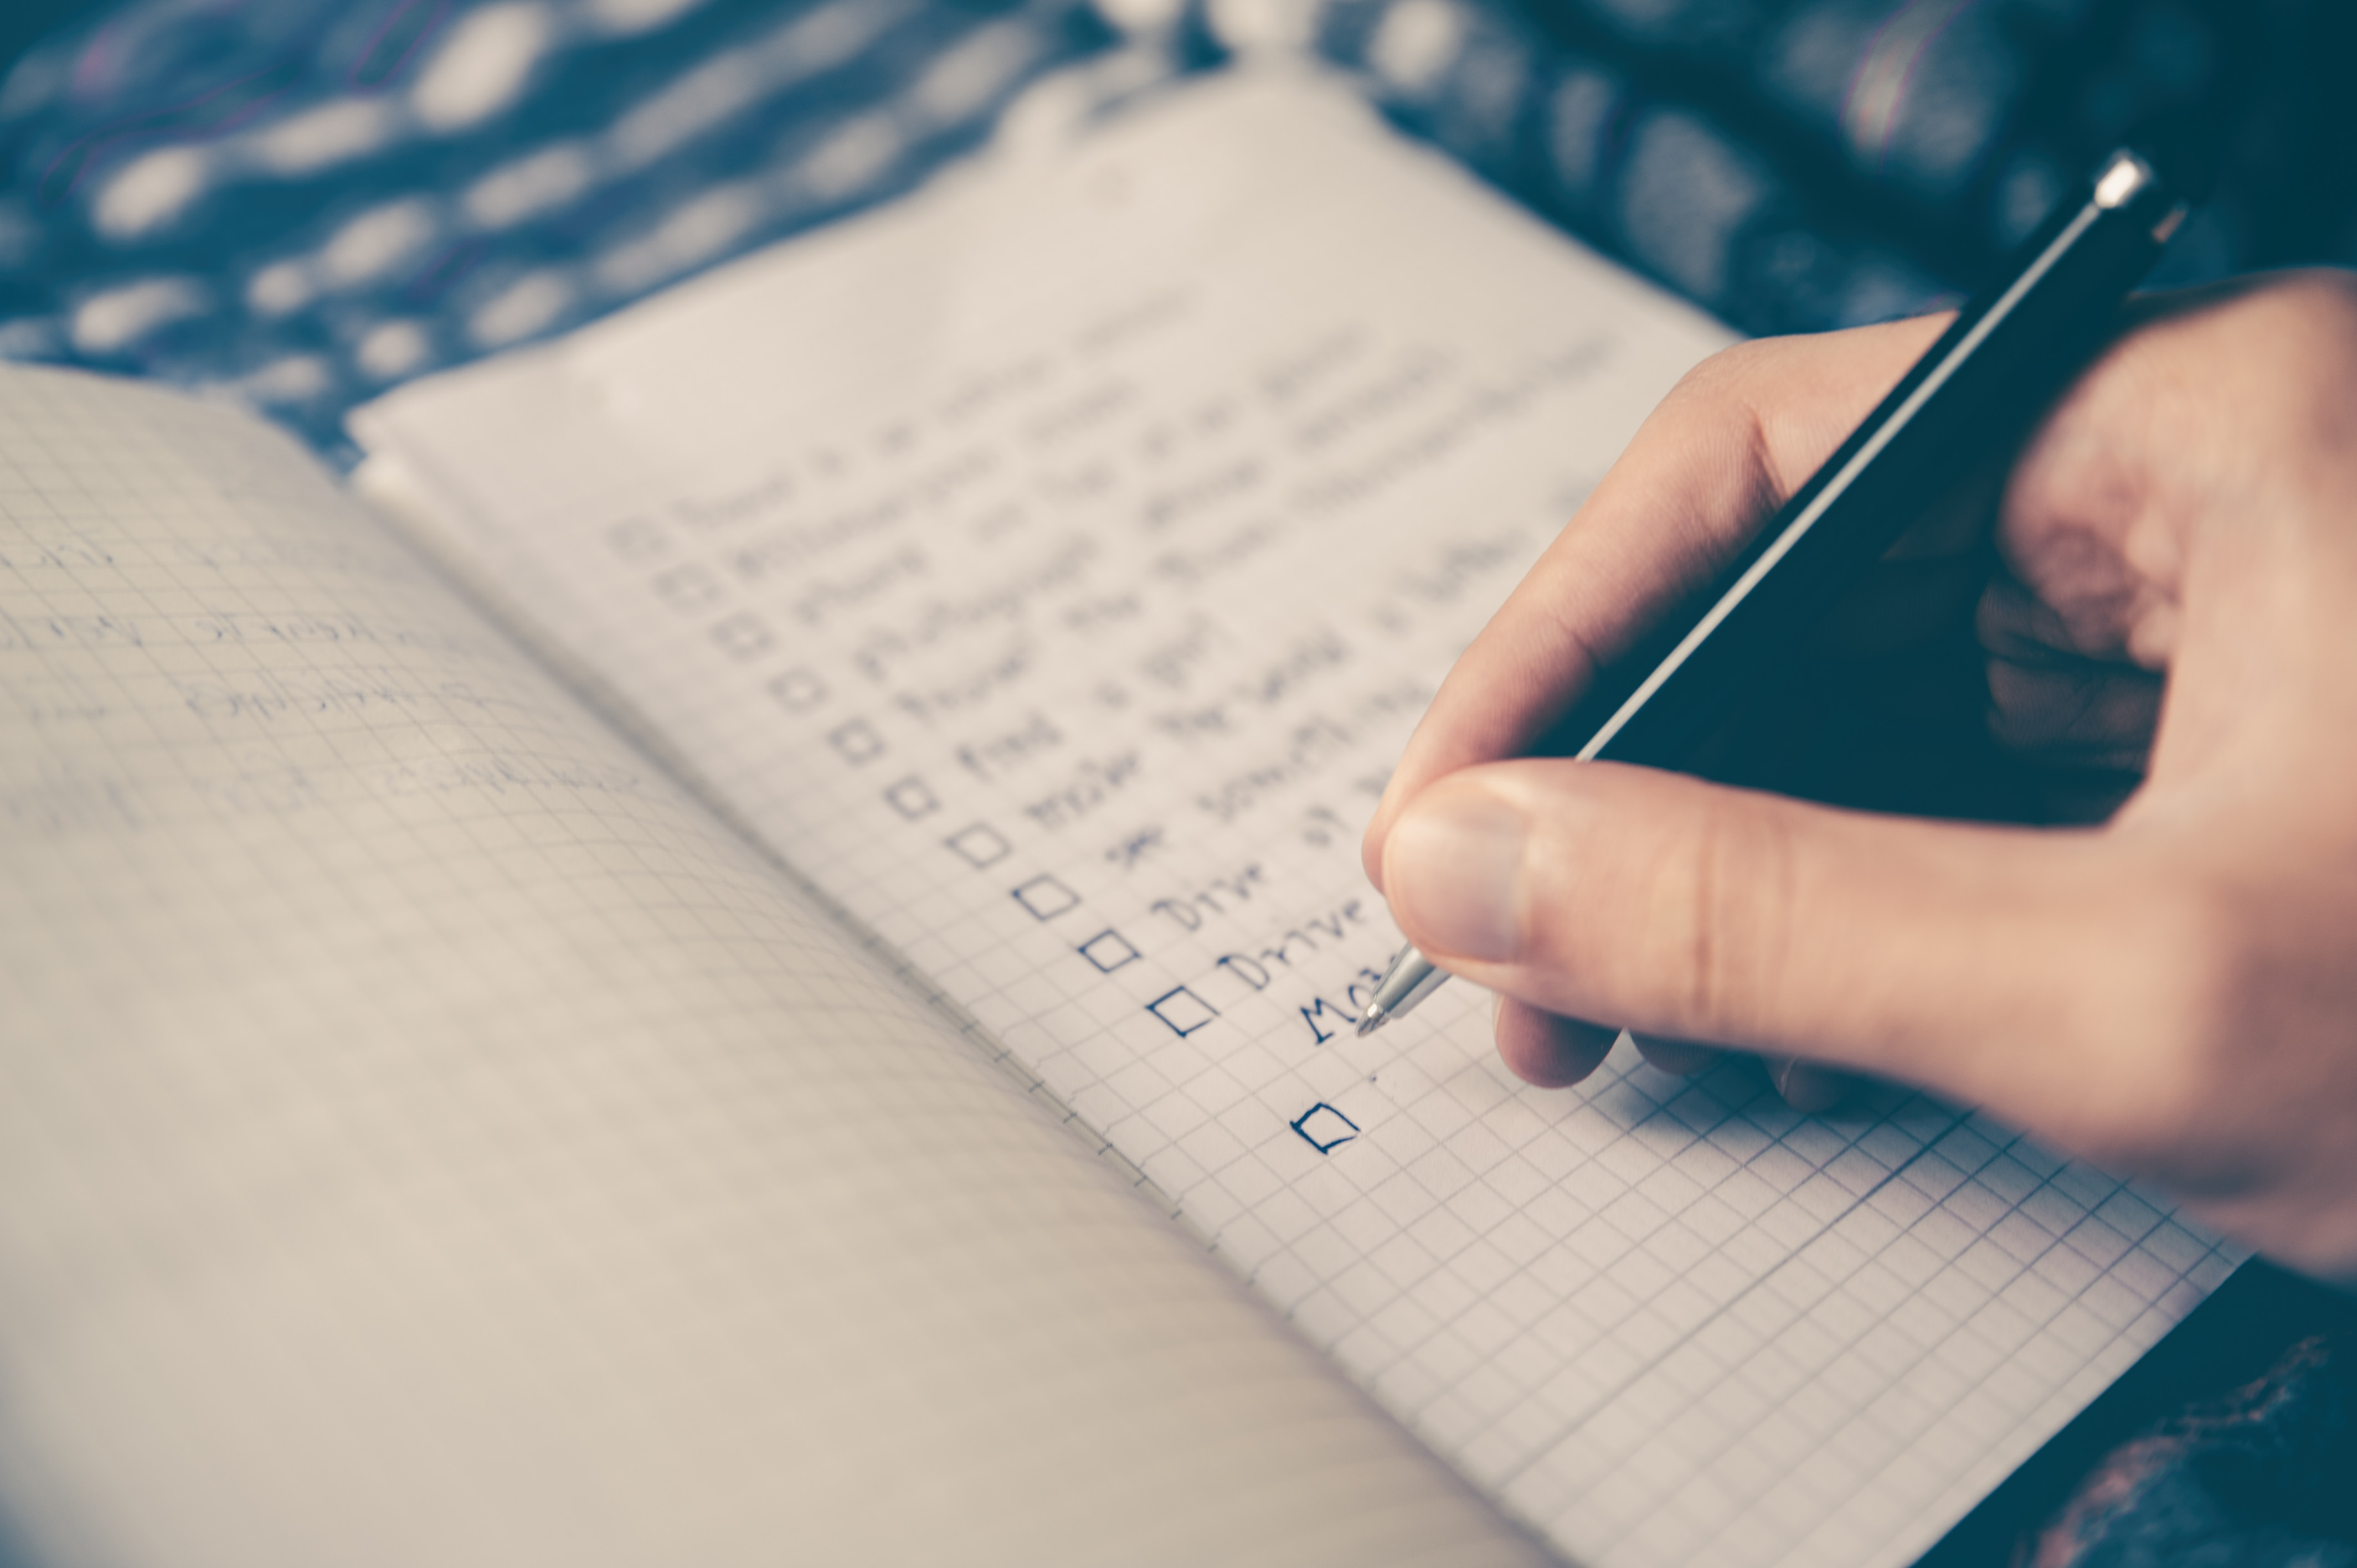 A hand writing in a square-ruled notebook with a black pen.